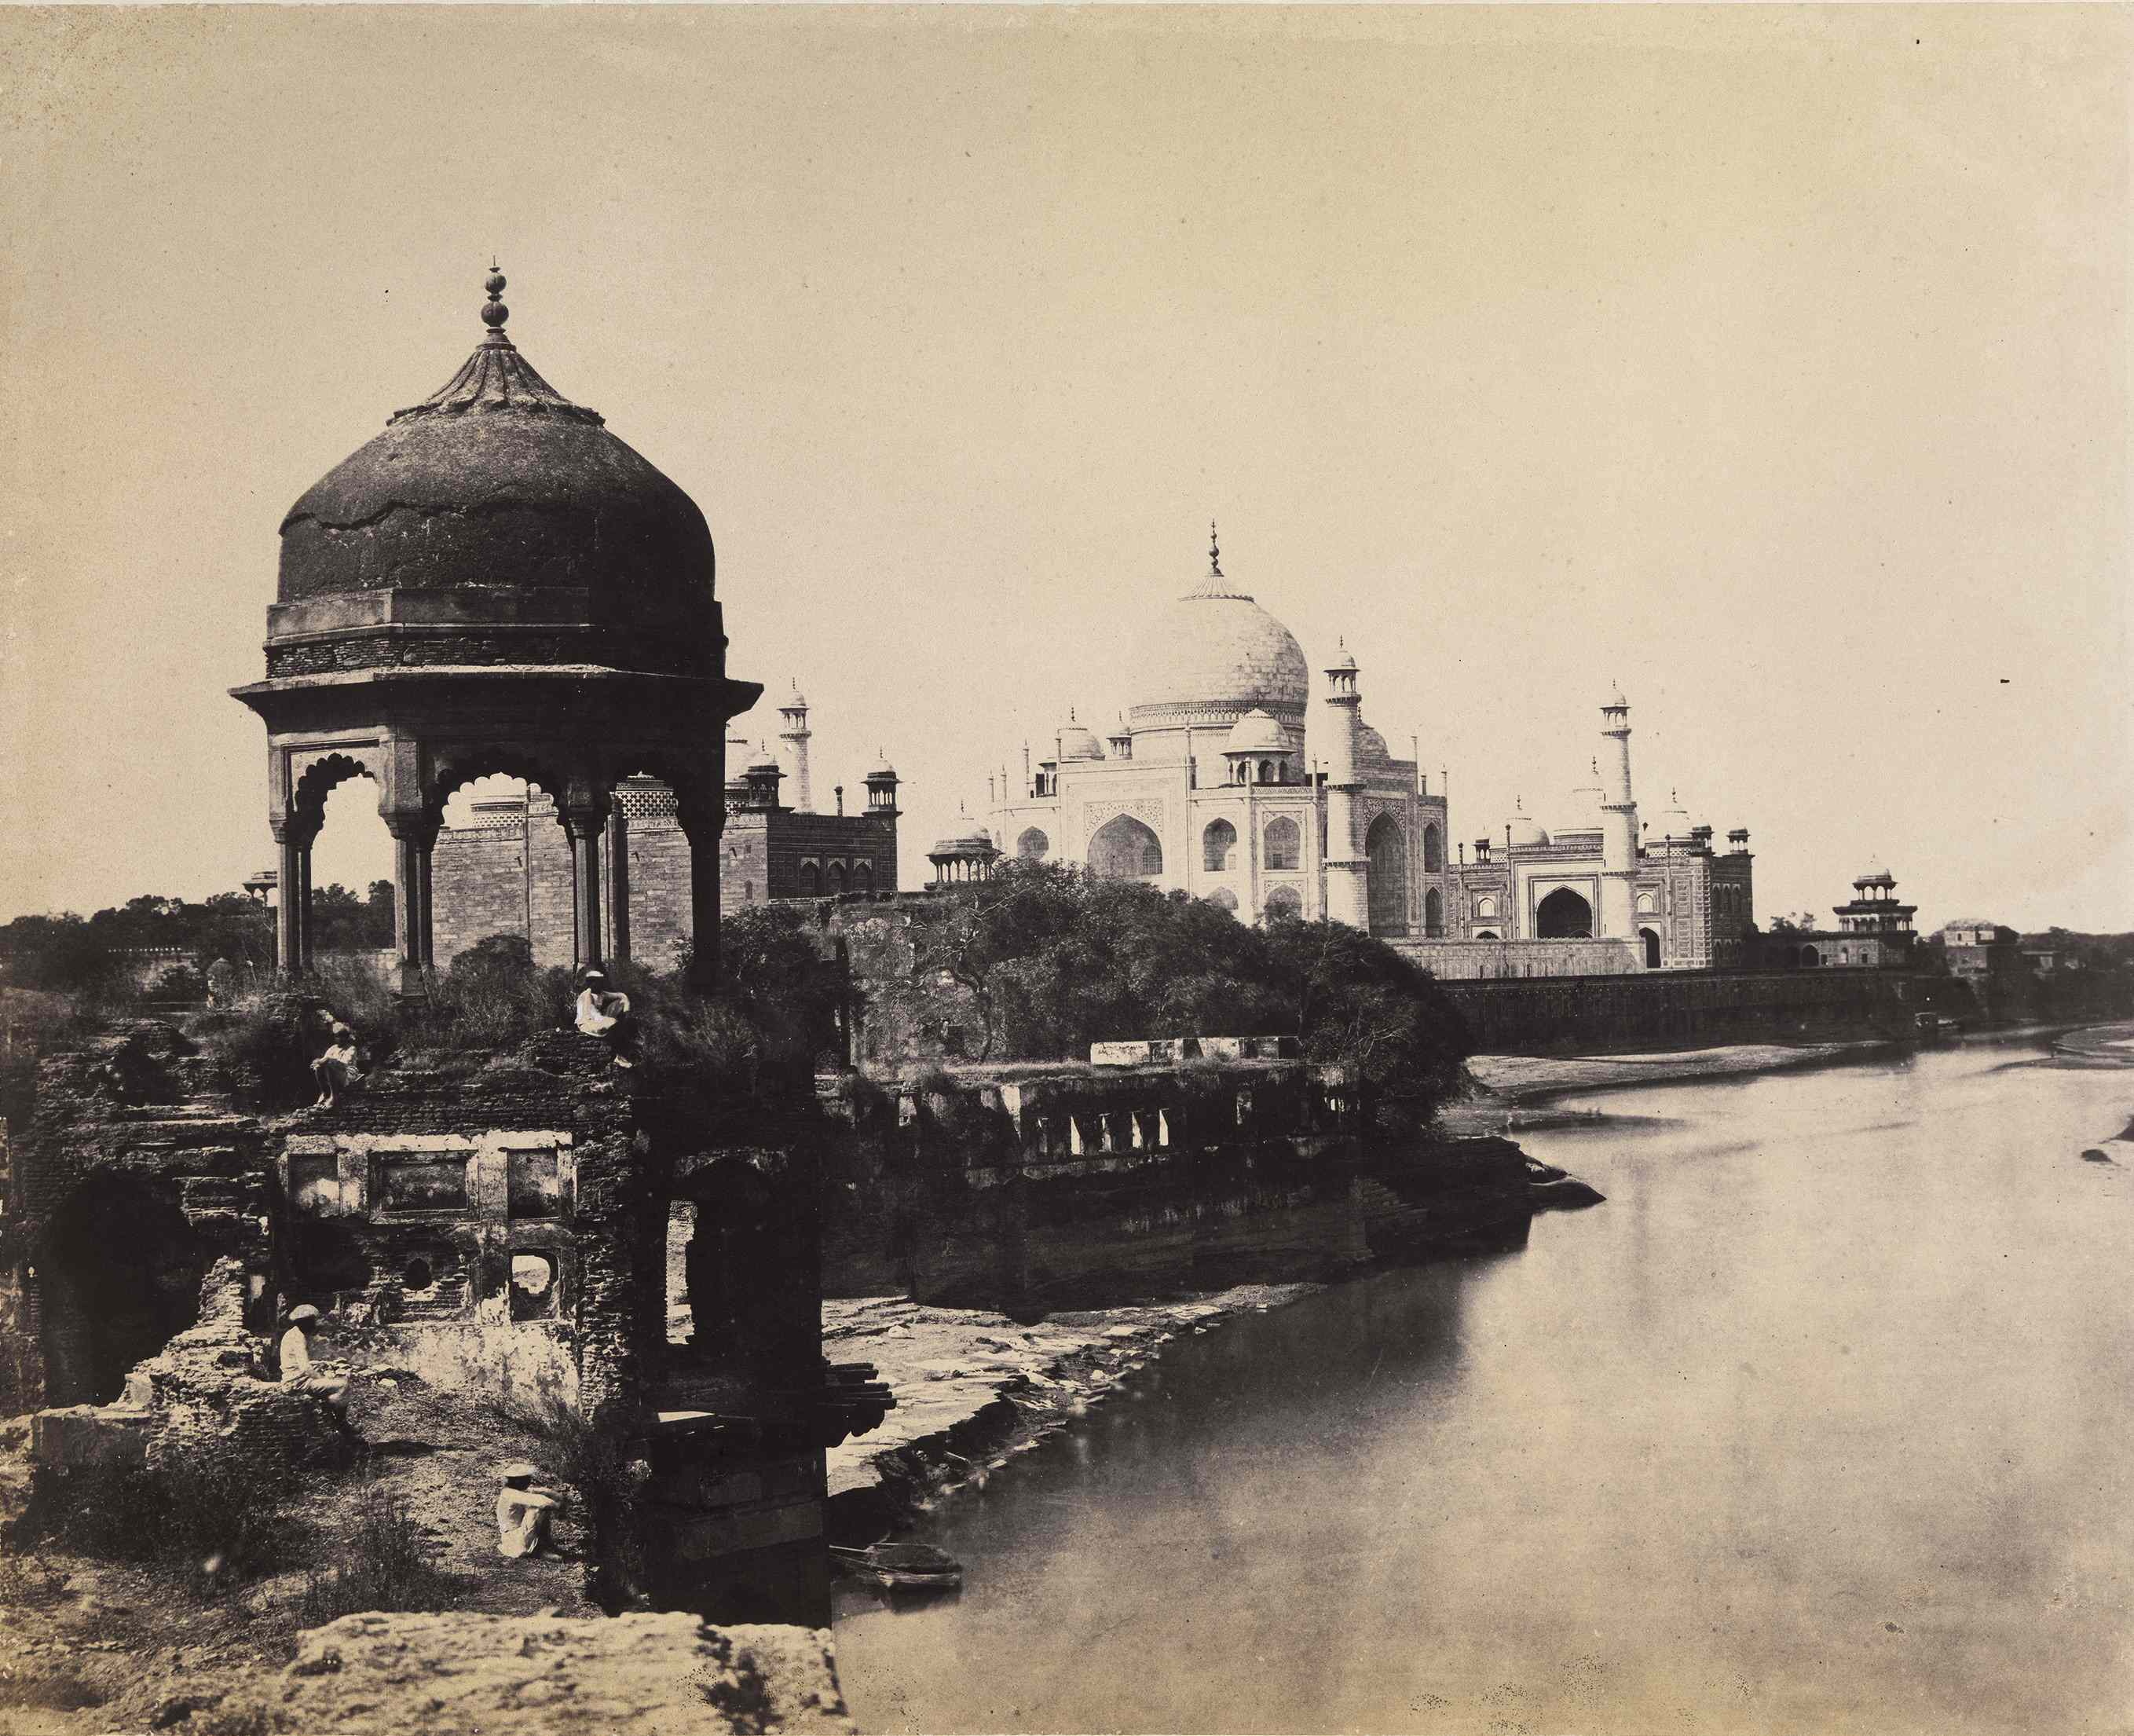 Dr John-Murray View of the Taj Mahal Agra India c.-1856 Albumen print